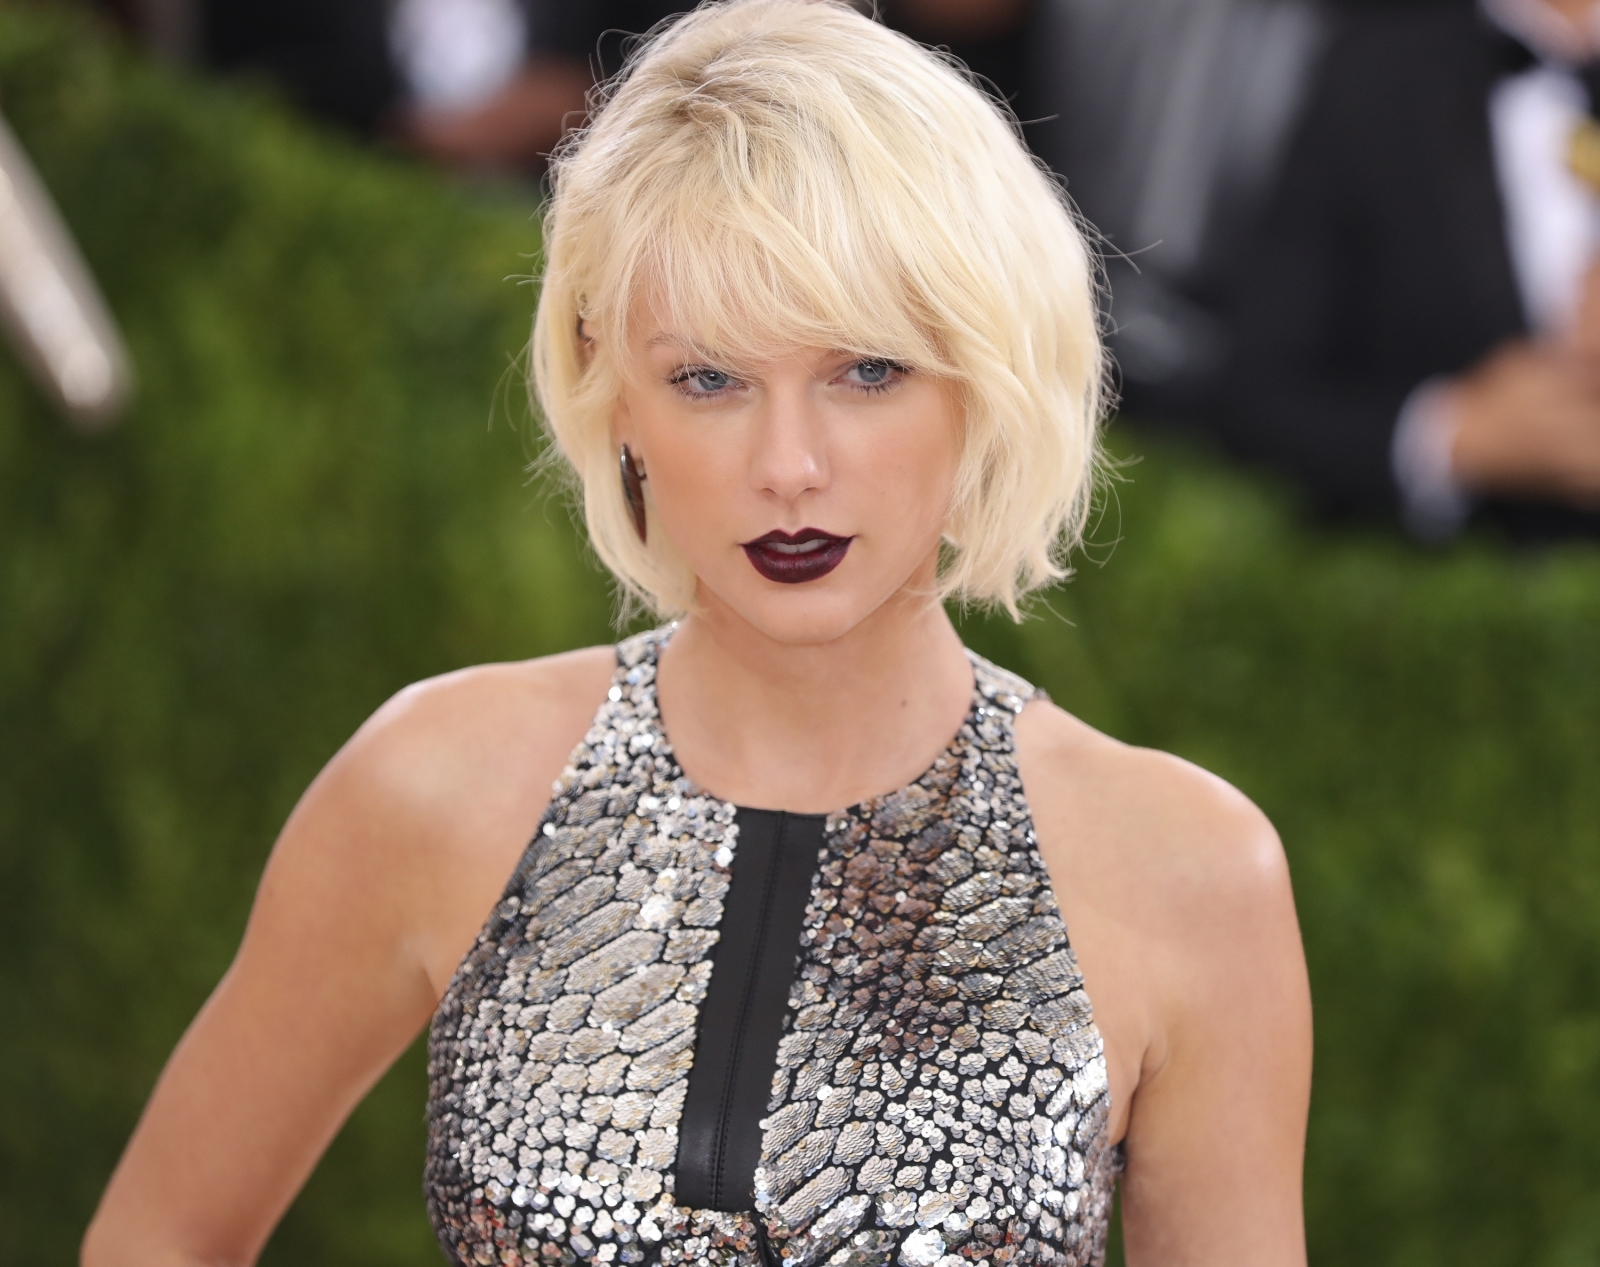 Taylor Swift's Sexual Assault Case to Begin Jury Selection